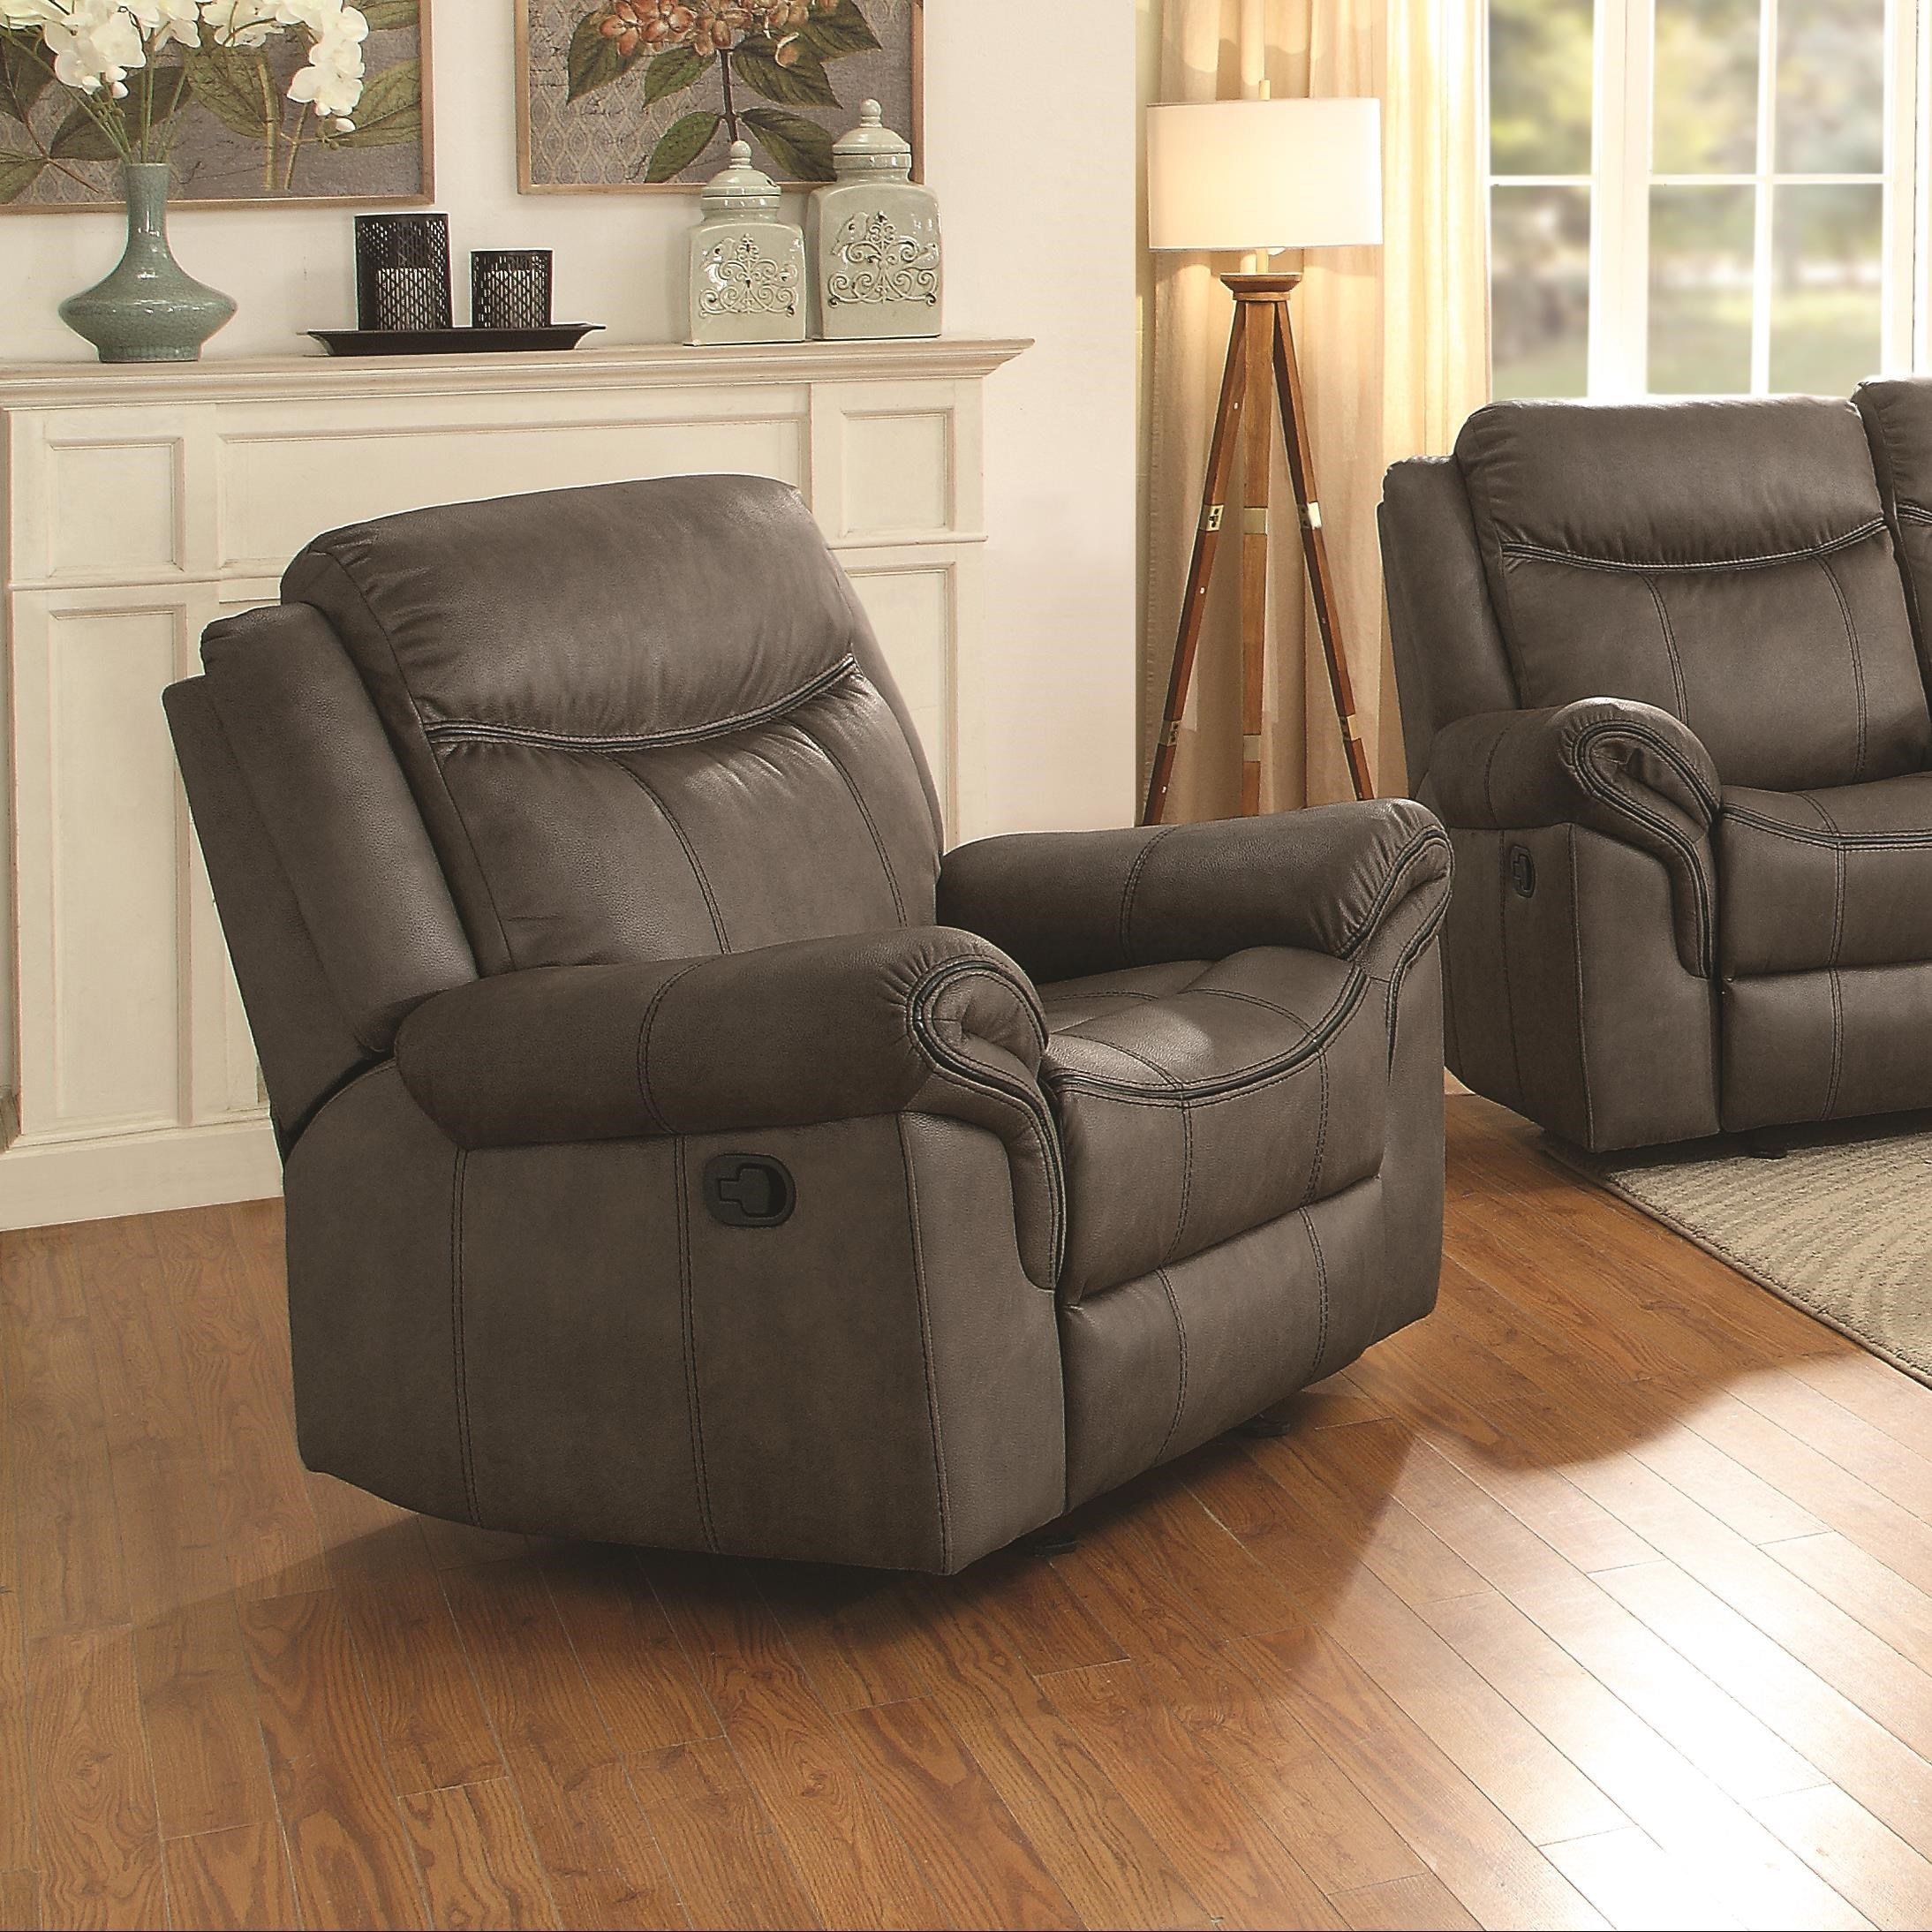 Sawyer Motion Glider Recliner by Coaster at Northeast Factory Direct